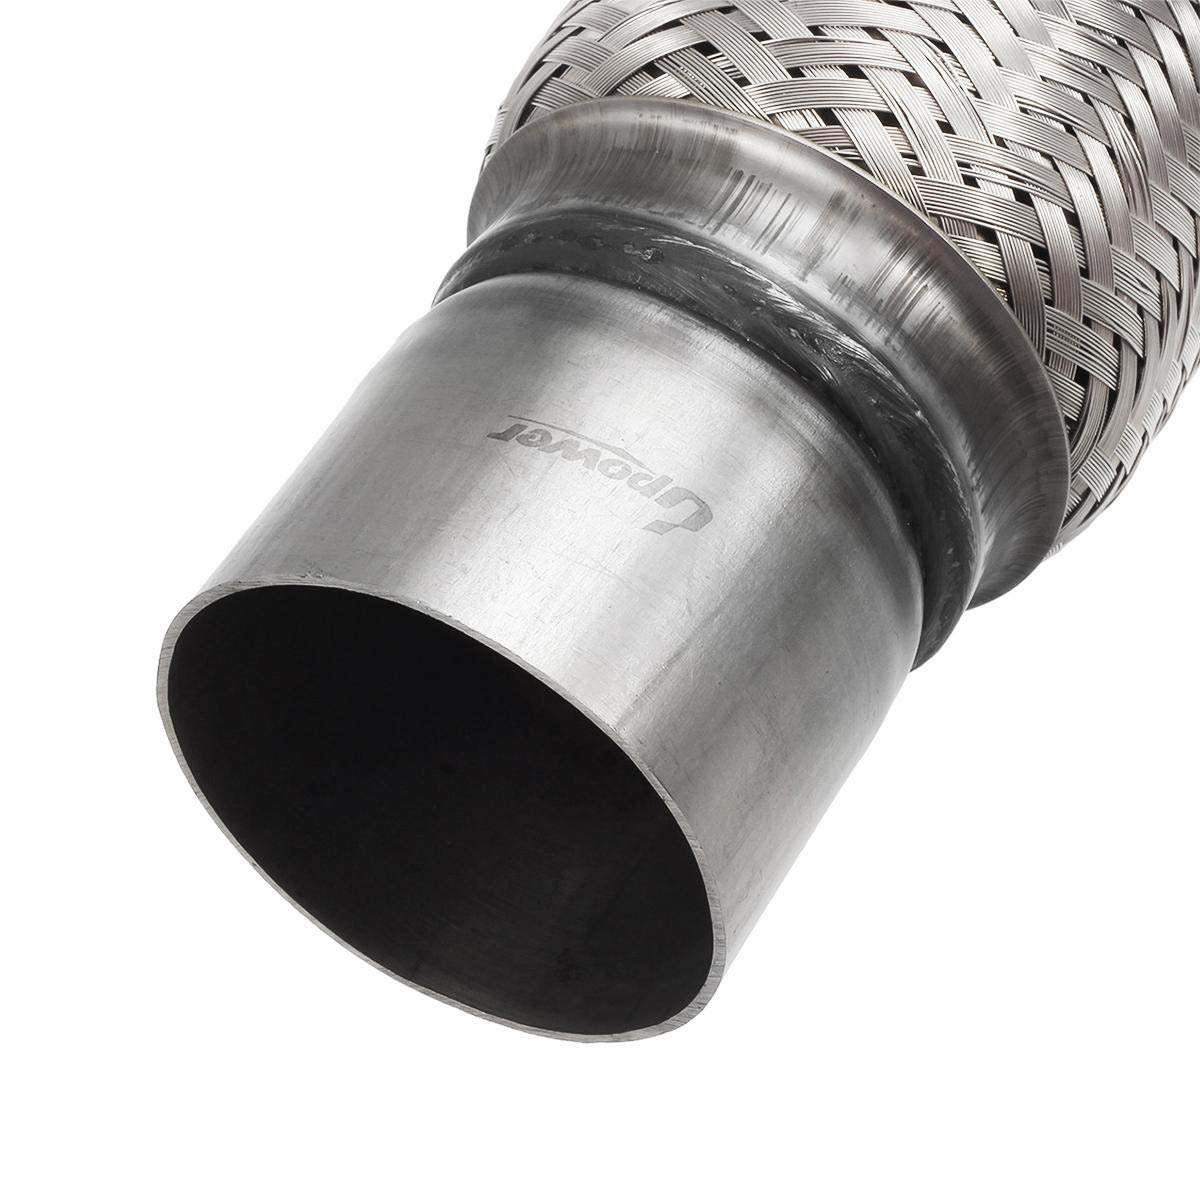 """Exhaust Flex Pipe Stainless Steel Double Braid Heavy Duty Tube 3/"""" x 6/"""" US"""